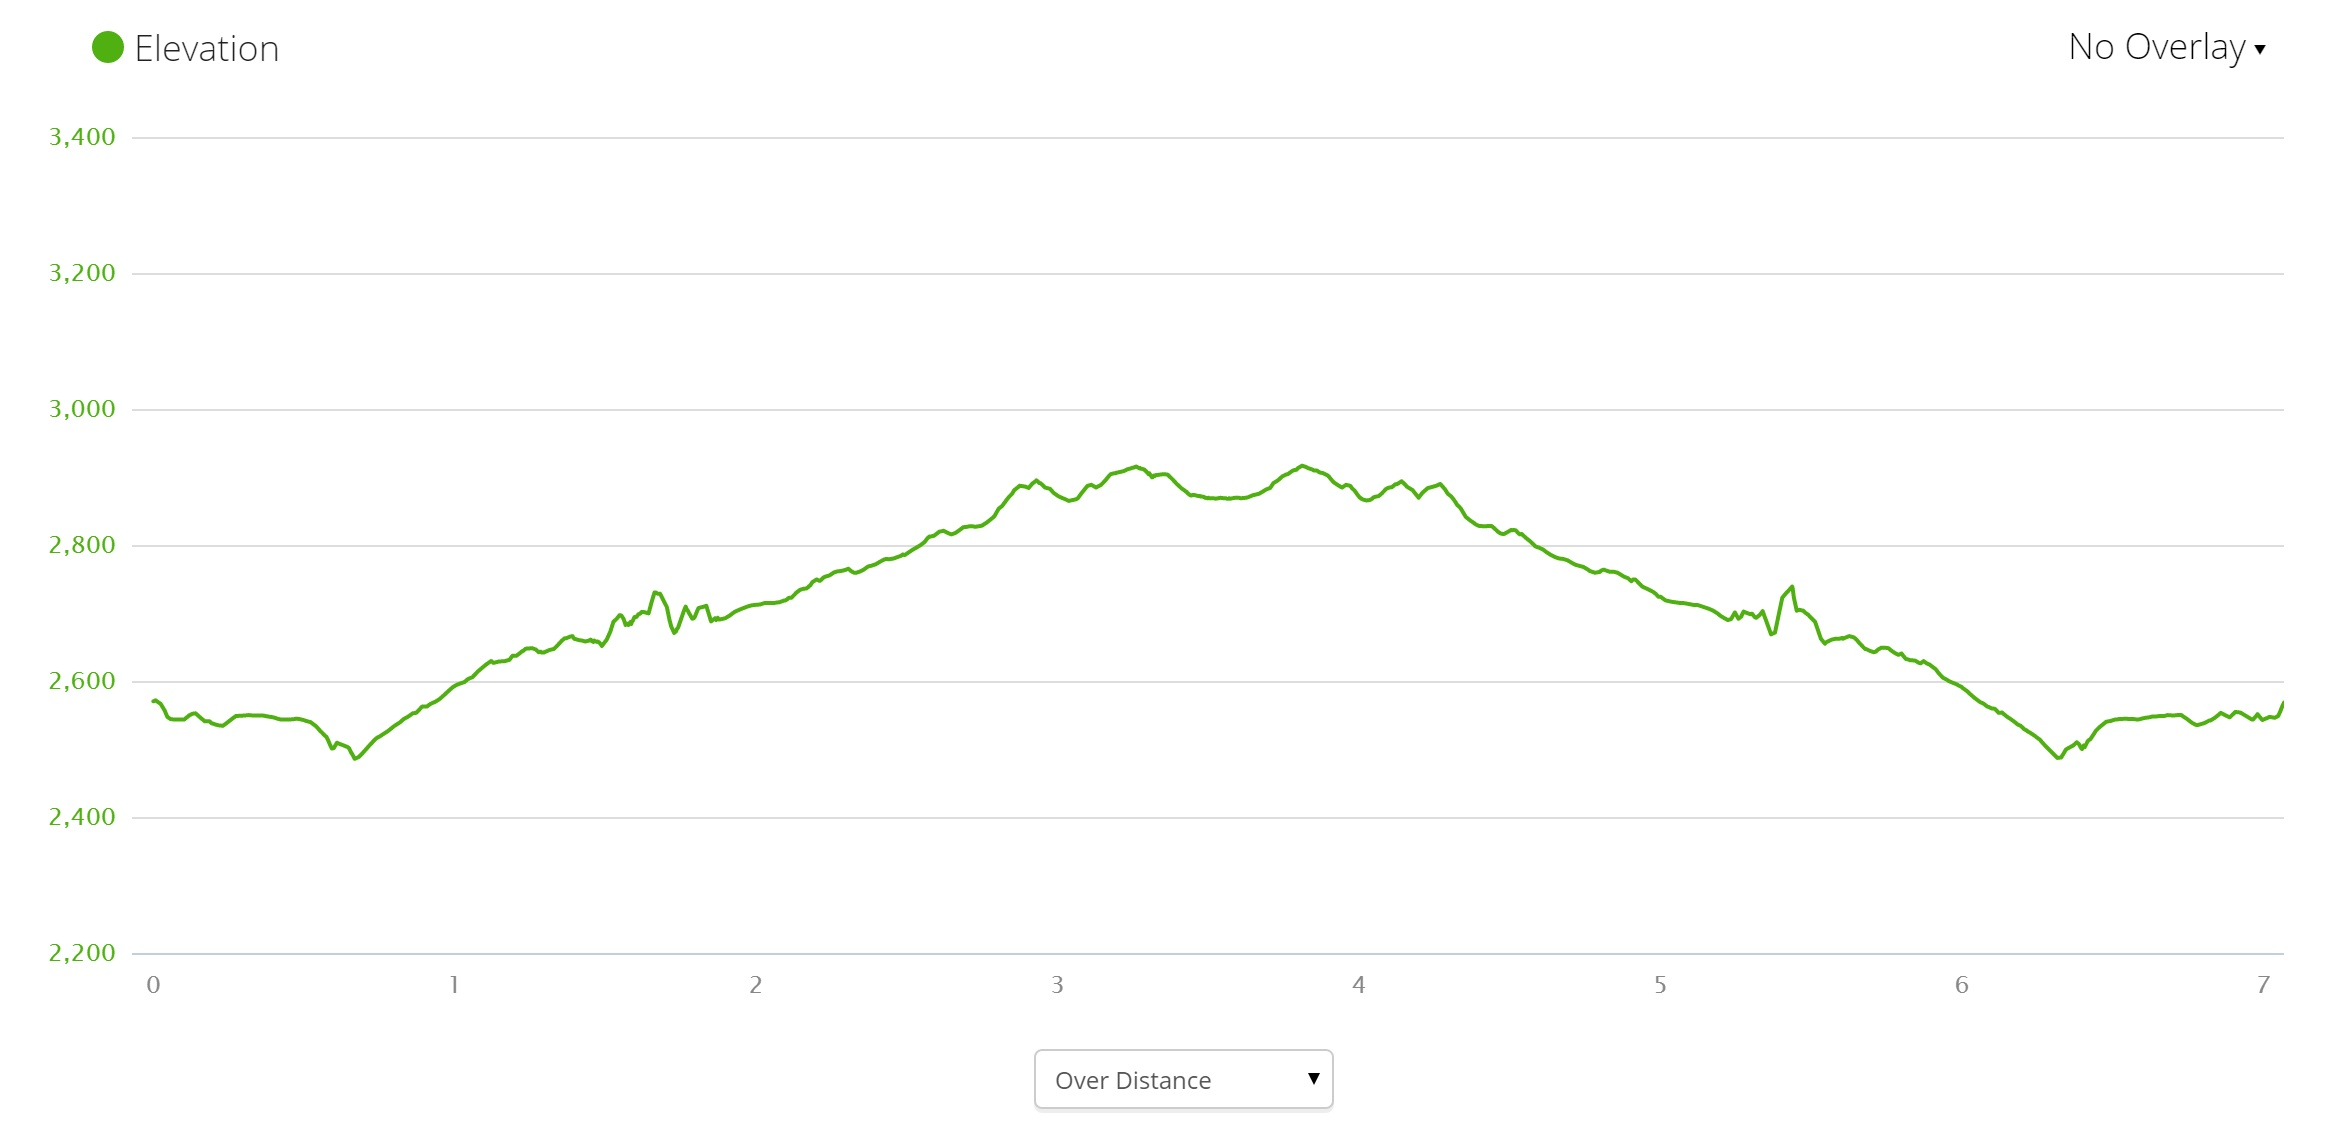 Hooker Valley Elevation Profile